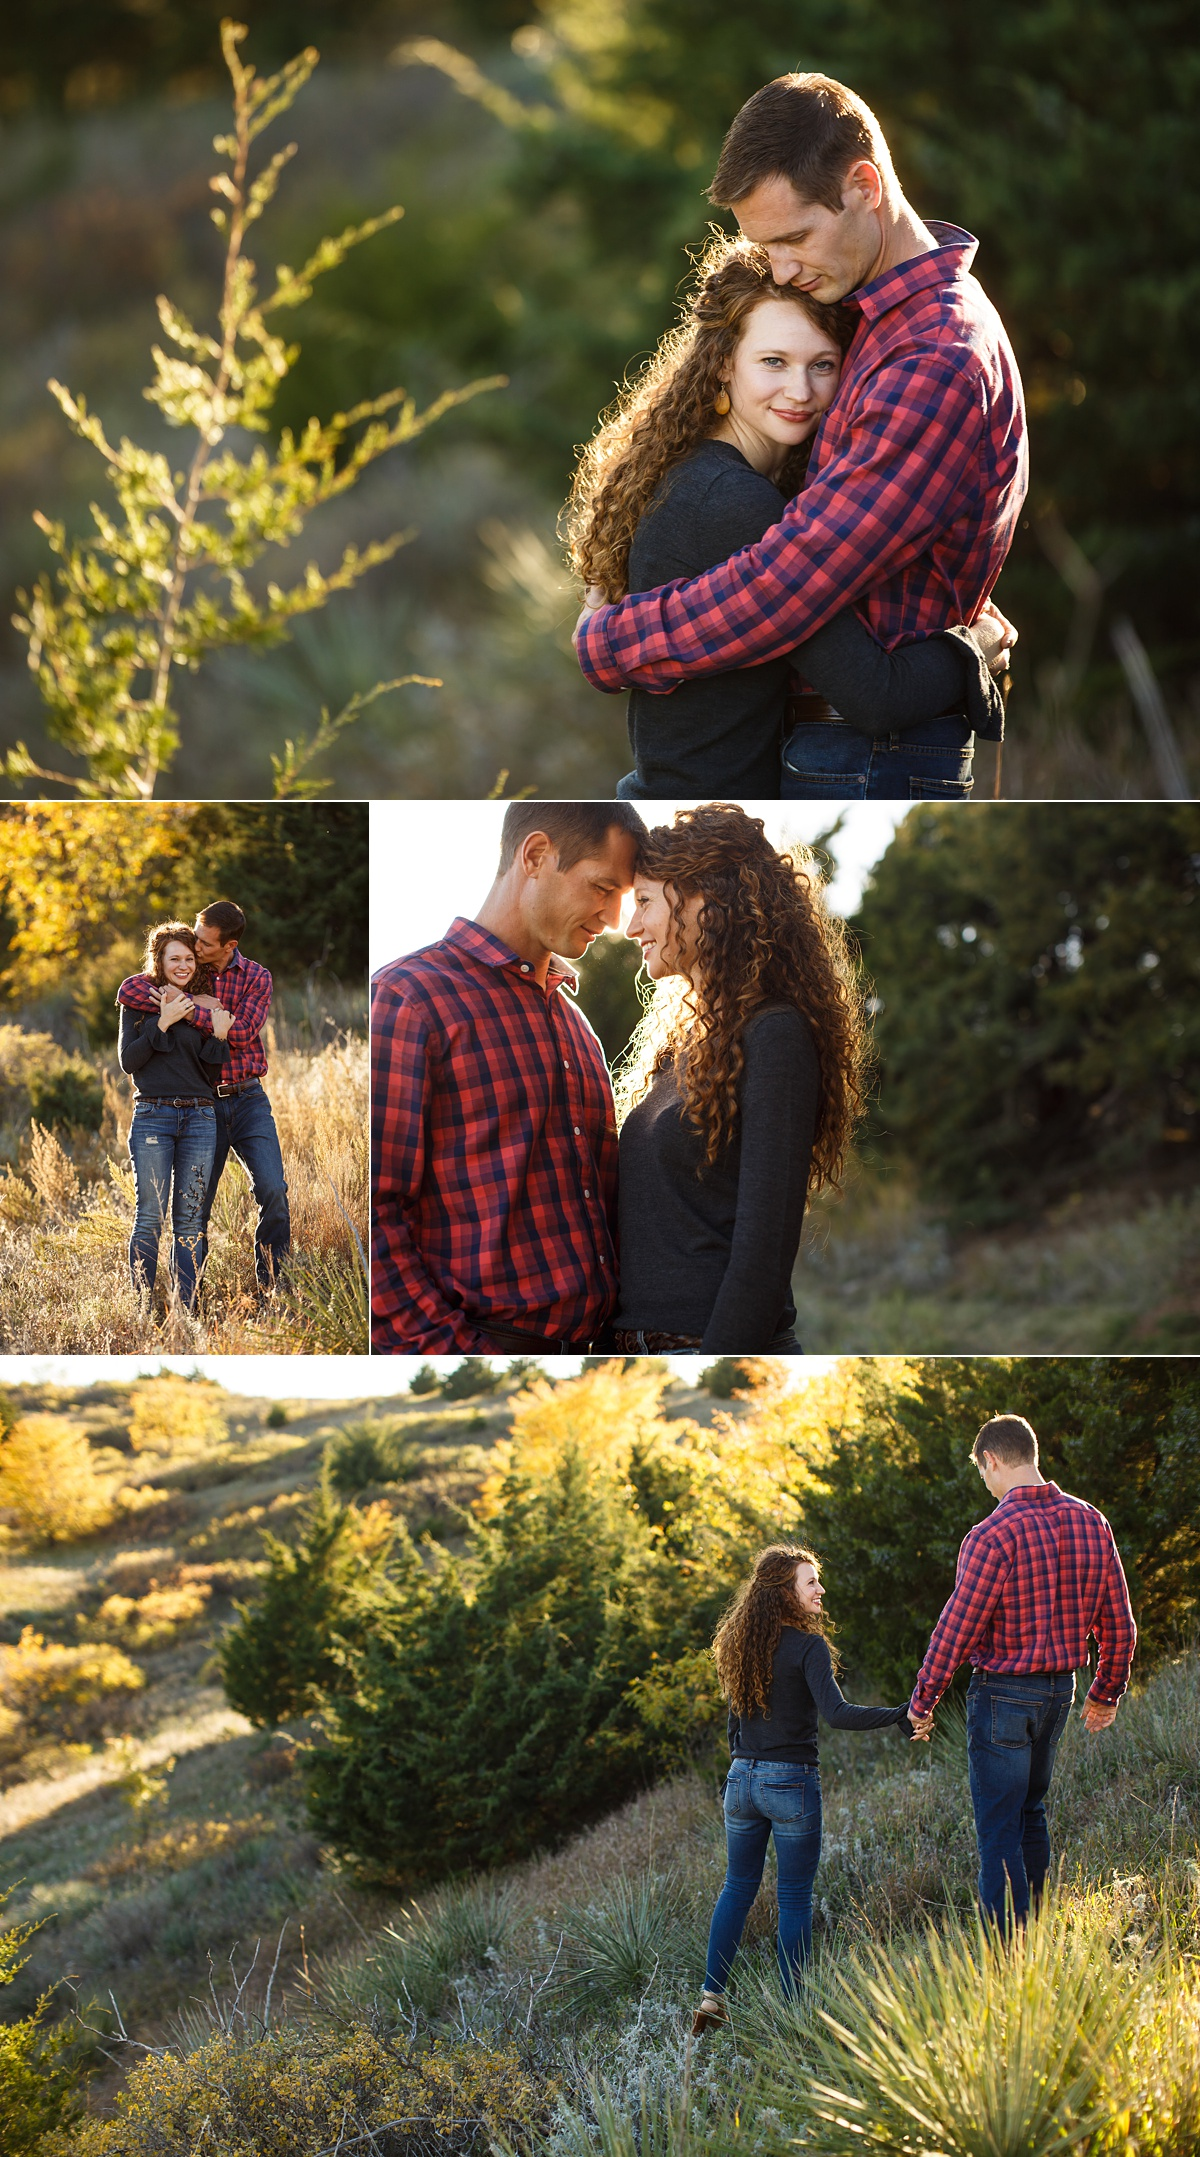 Lake_Wilson_Engagement_Session_0001.JPG